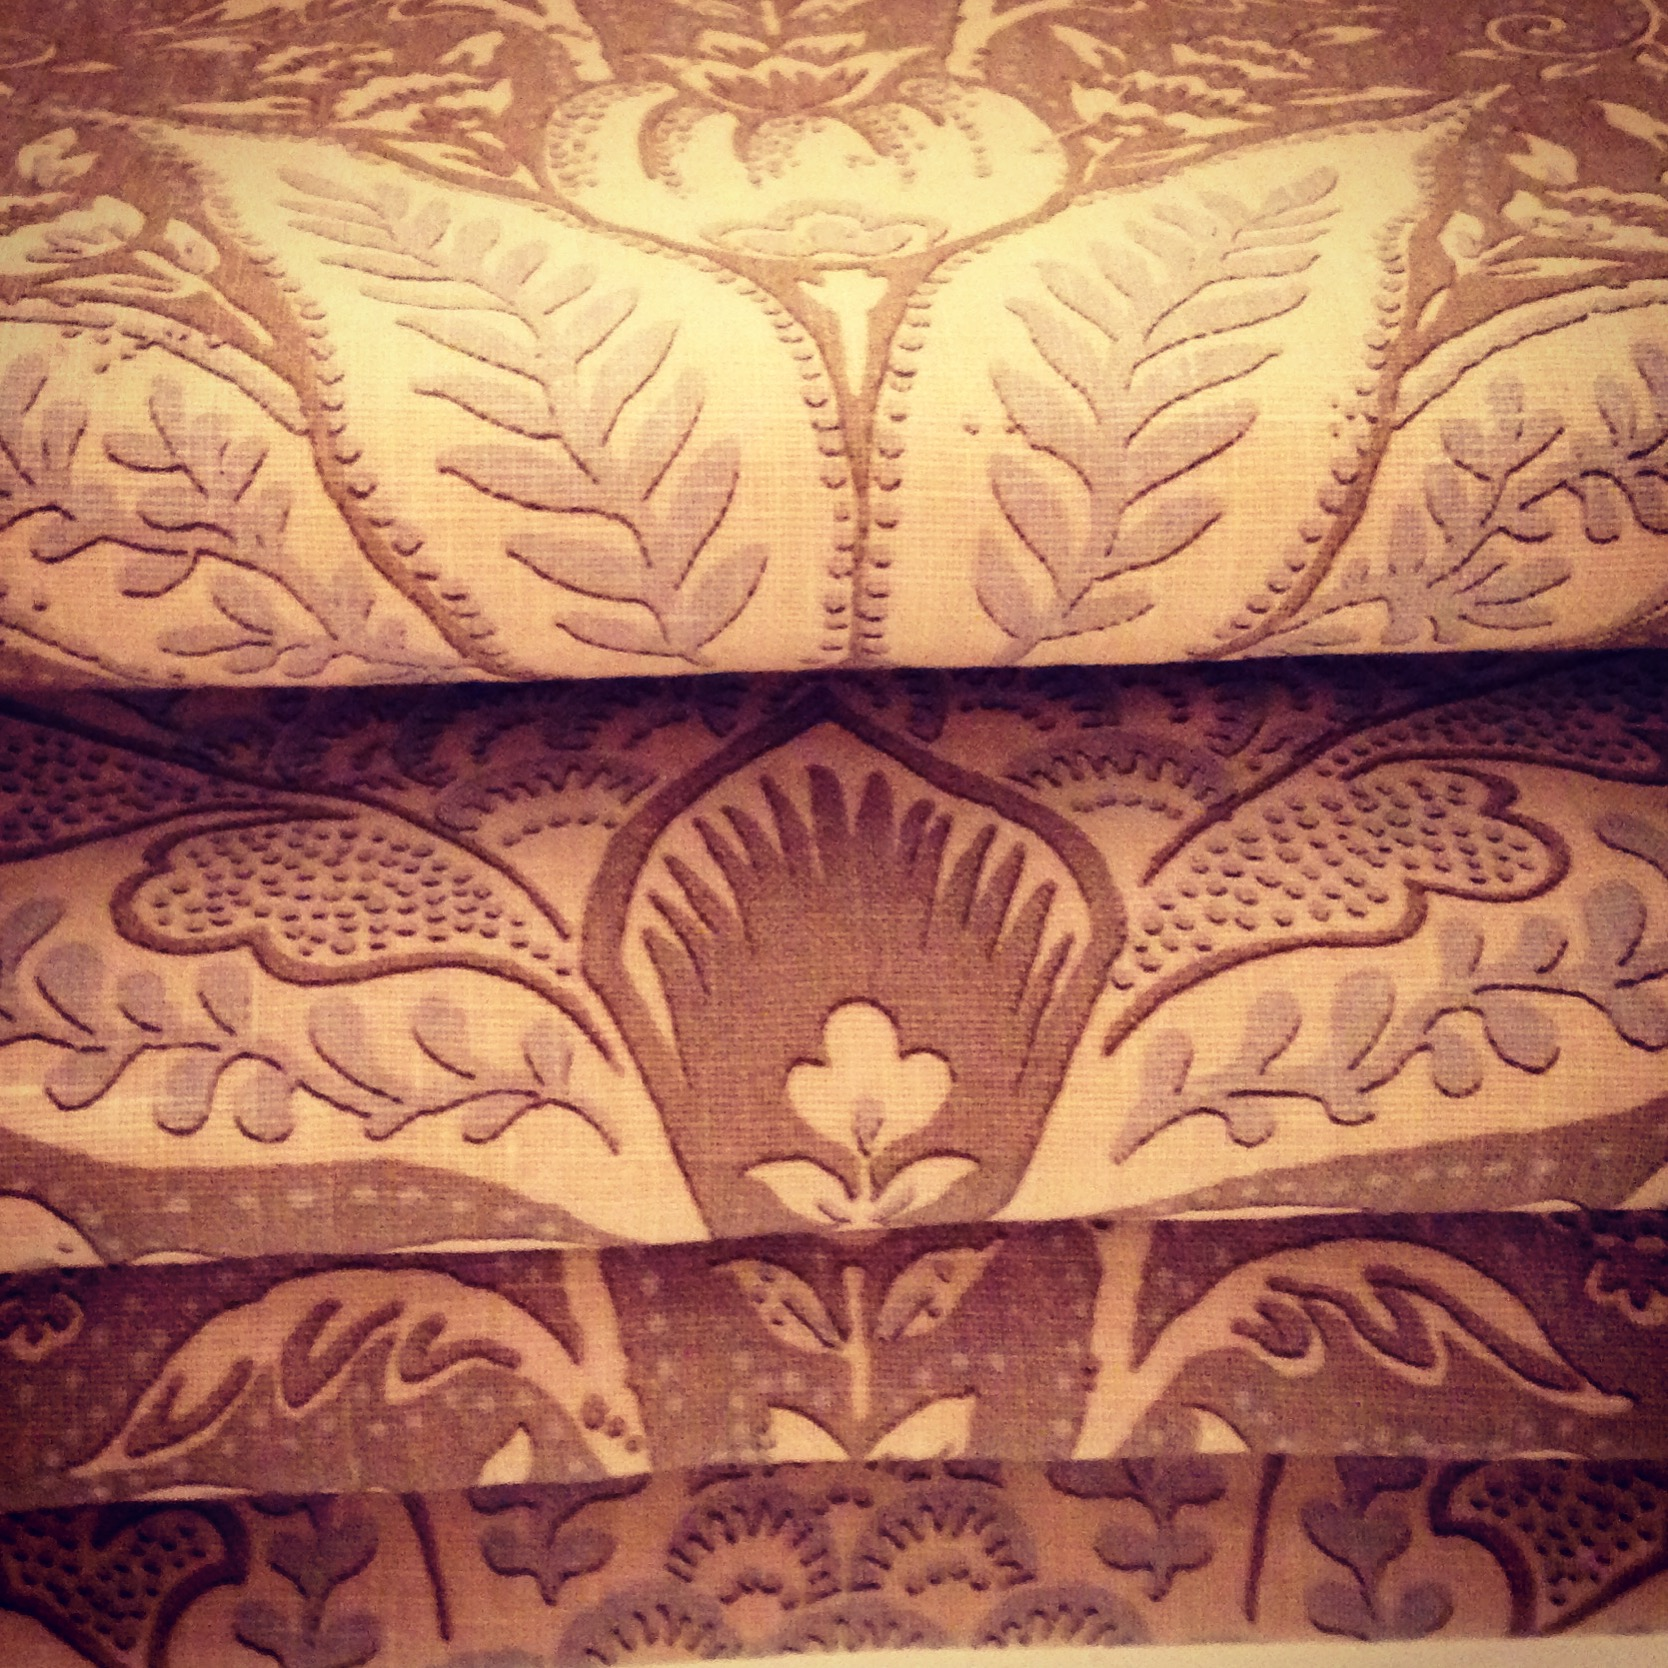 Lewis Wood blind detail